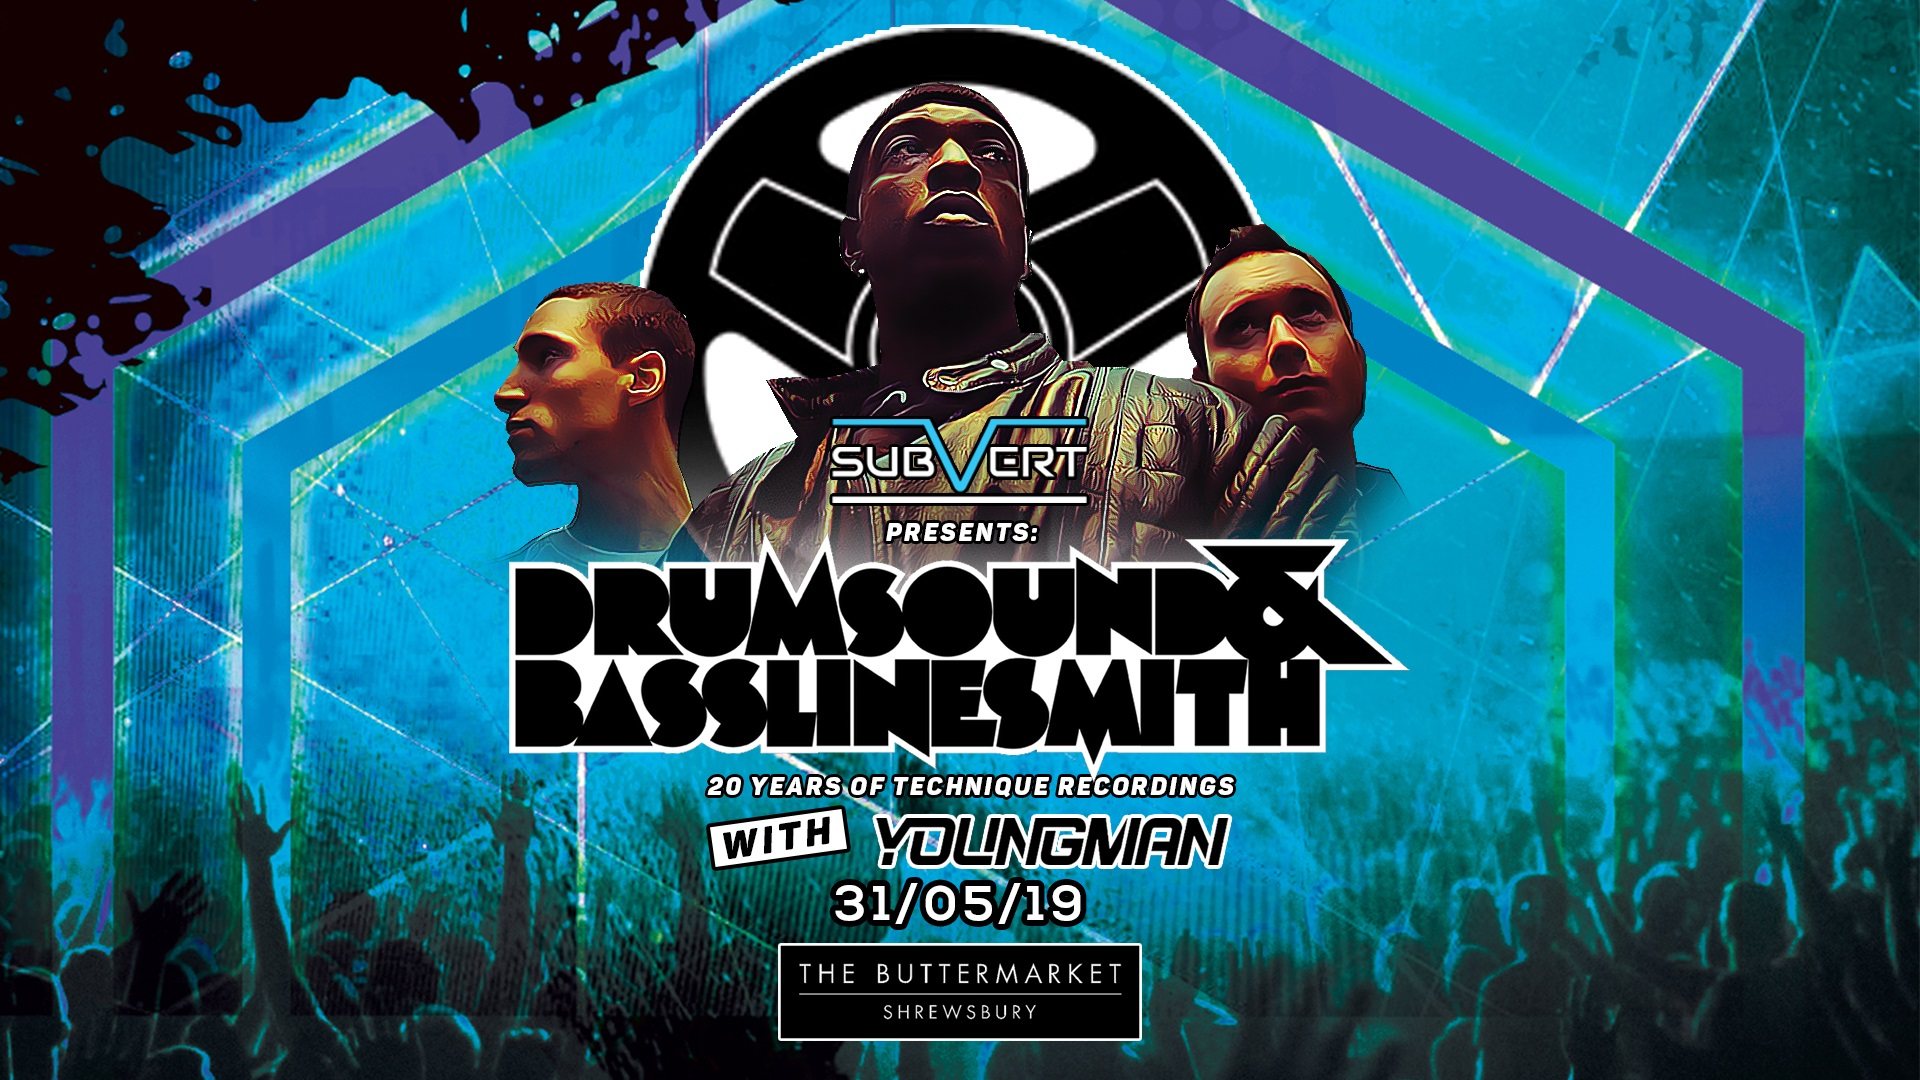 Subvert Presents Drumsound & Bassline Smith – 20 Years of Technique